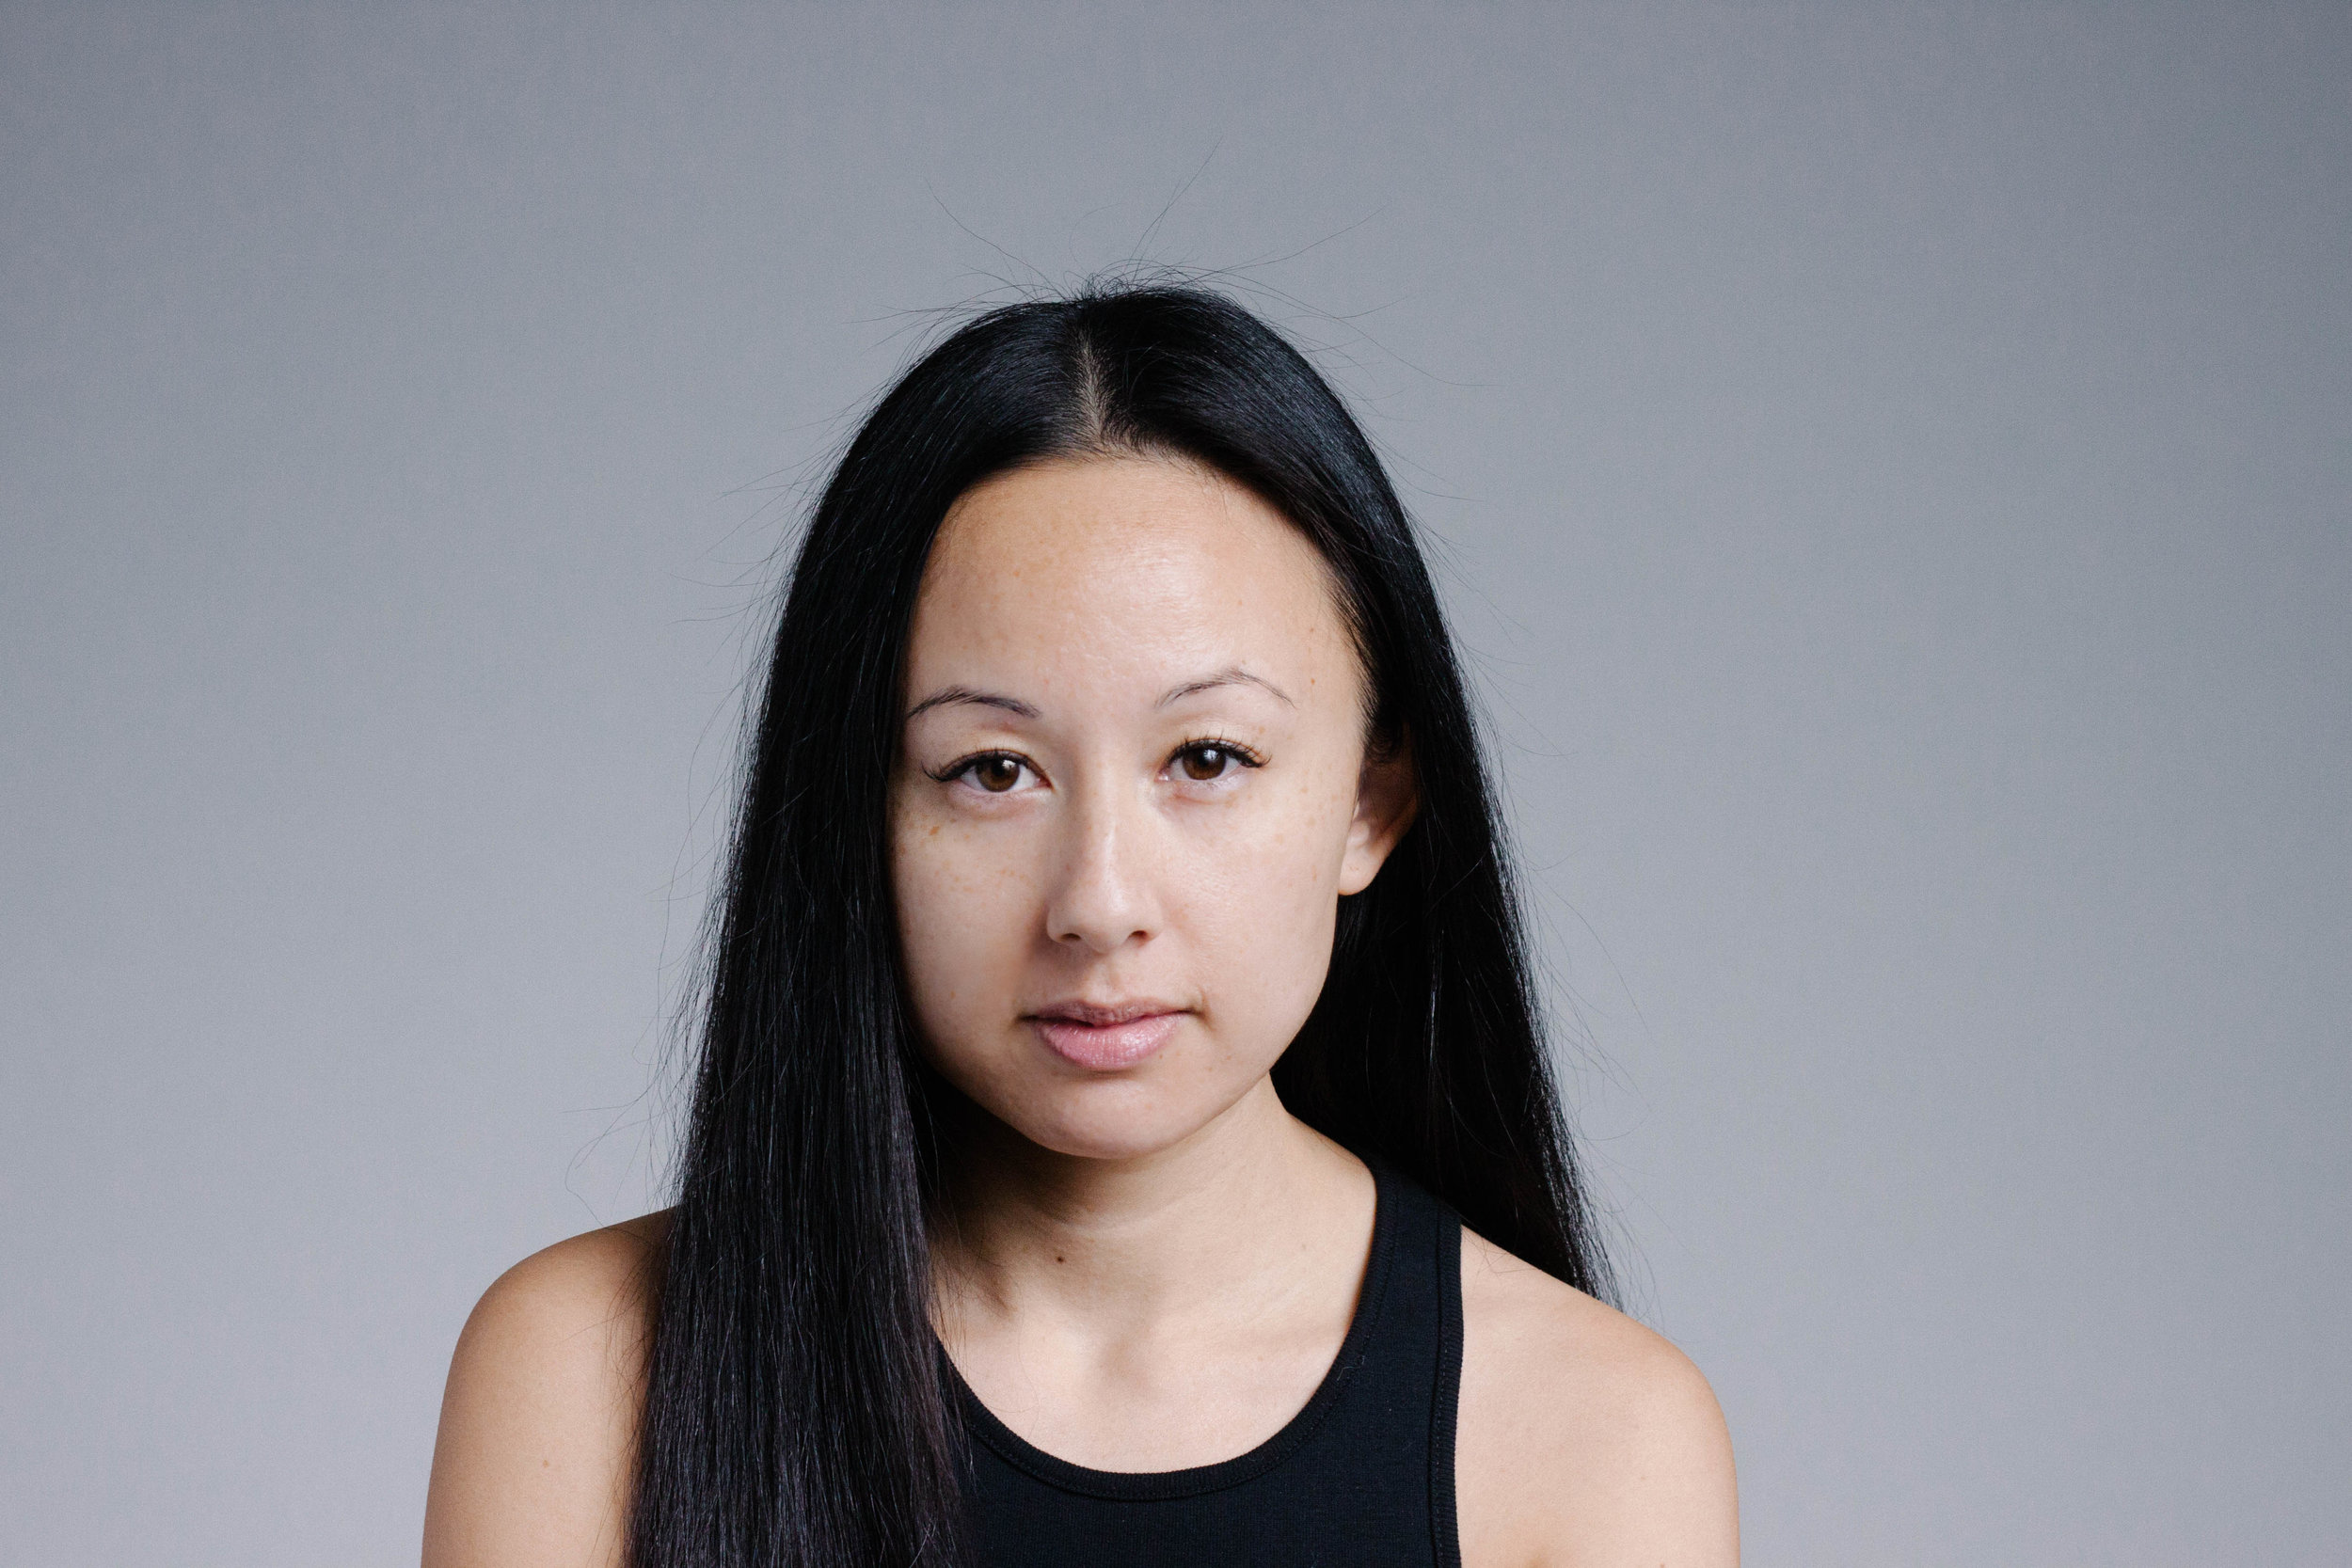 When I'm in a crowd of white people, I feel asian. Even though I'm half, I feel a little more isolated. - -Natasha